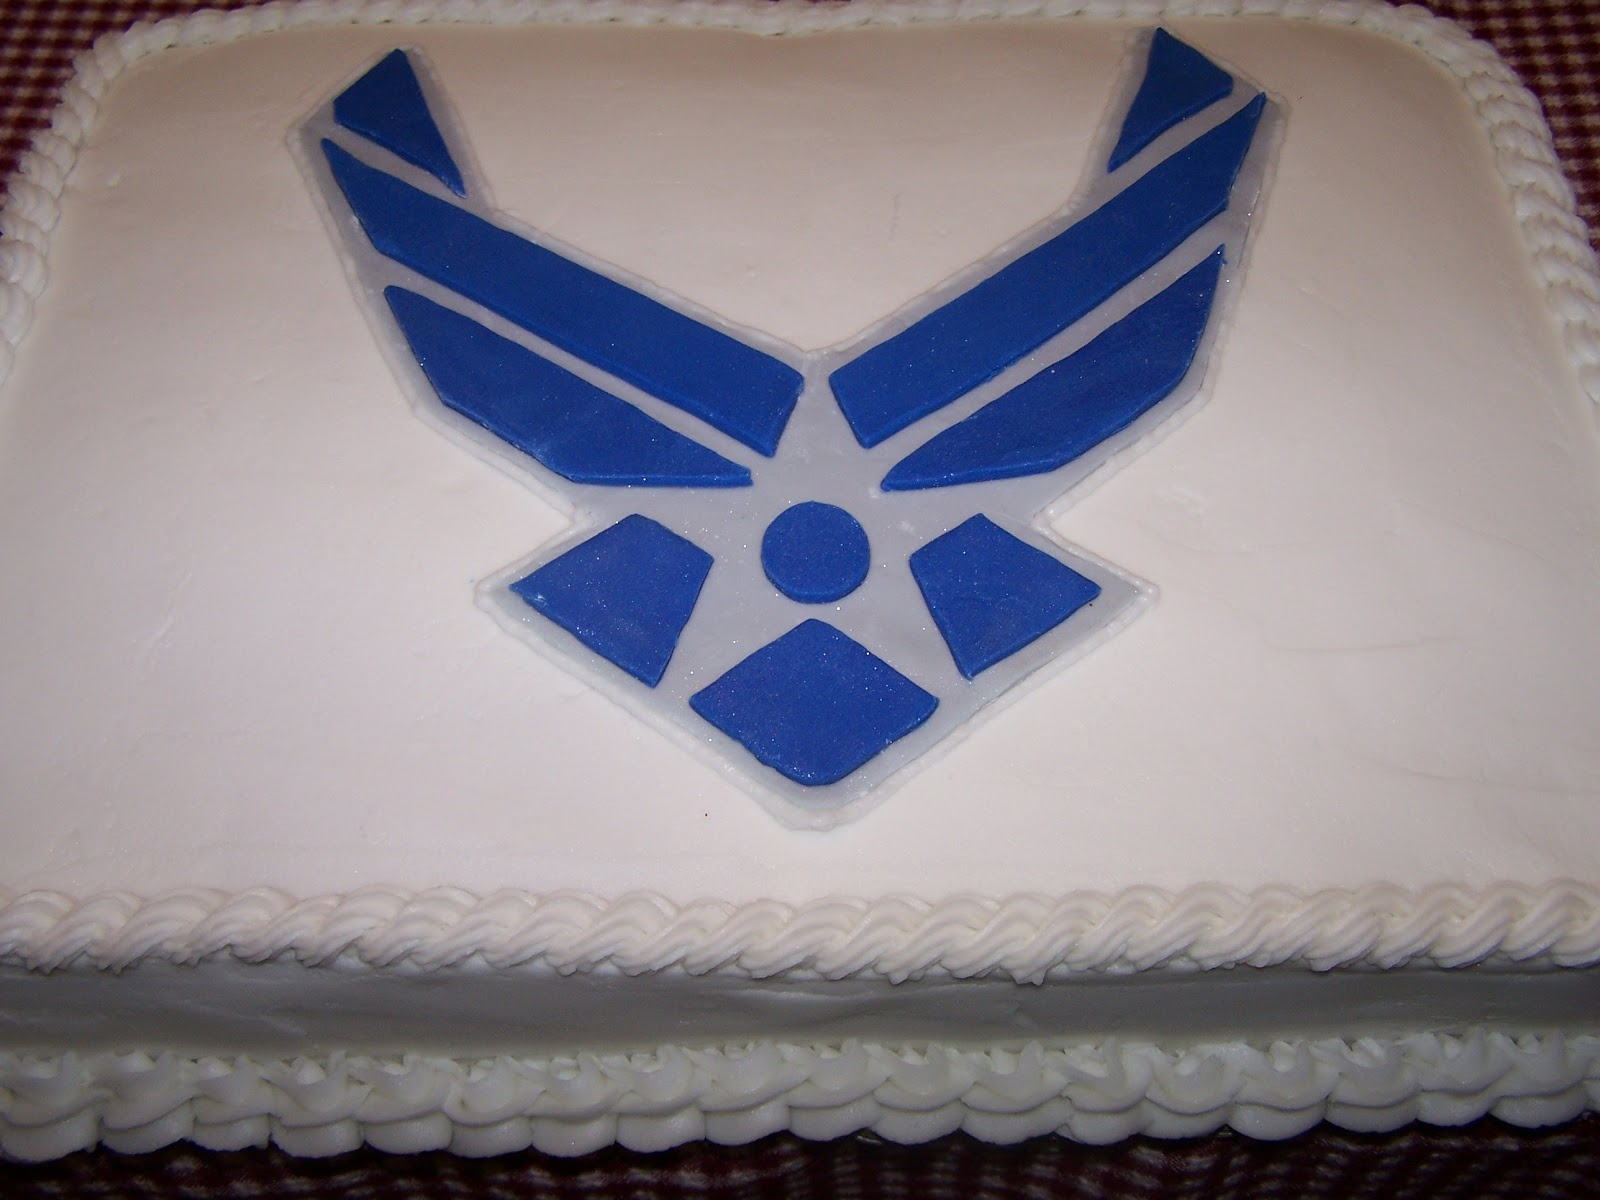 Edible aesthetics air force cake for Air force cakes decoration